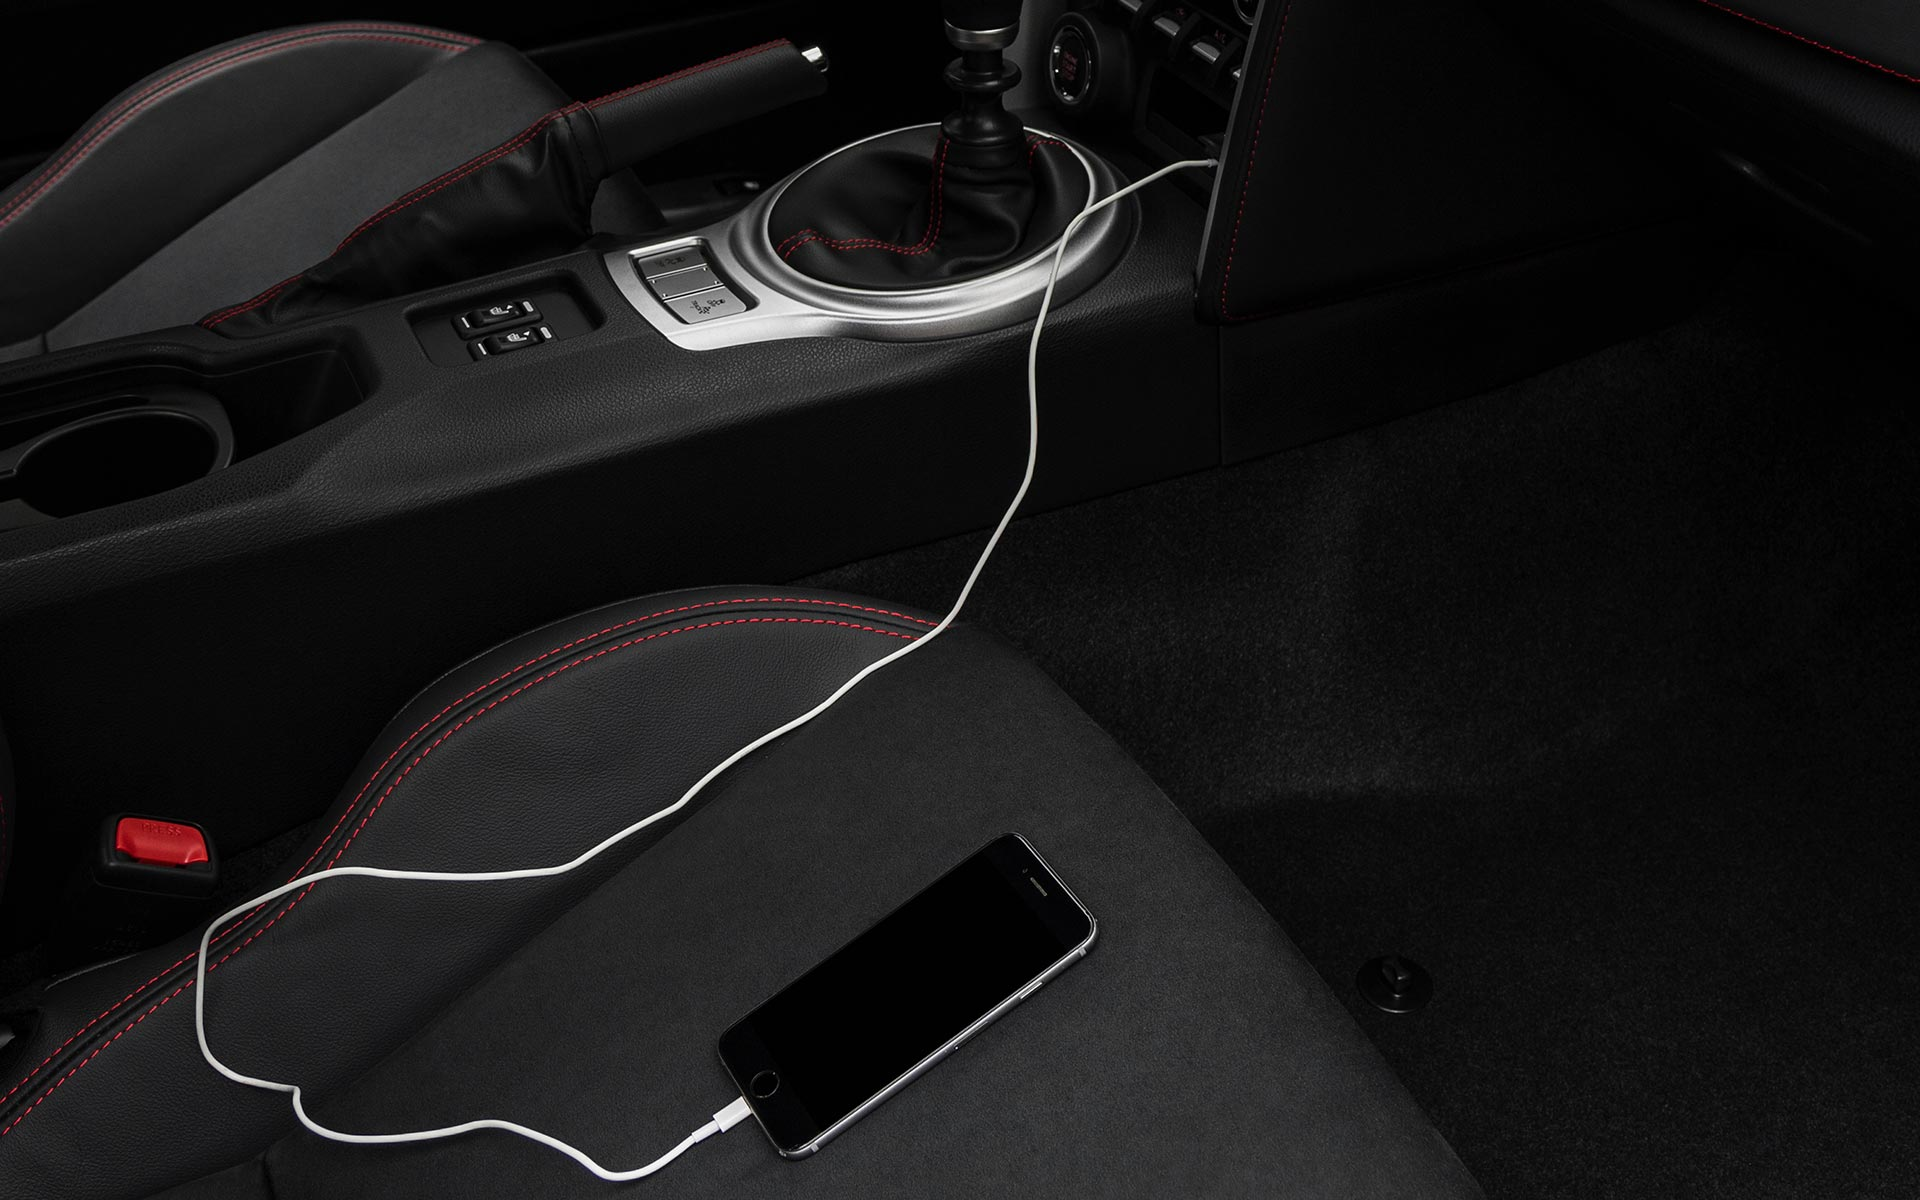 A close-up of a smartphone plugged into one of the dual USB ports on the 2020 BRZ.